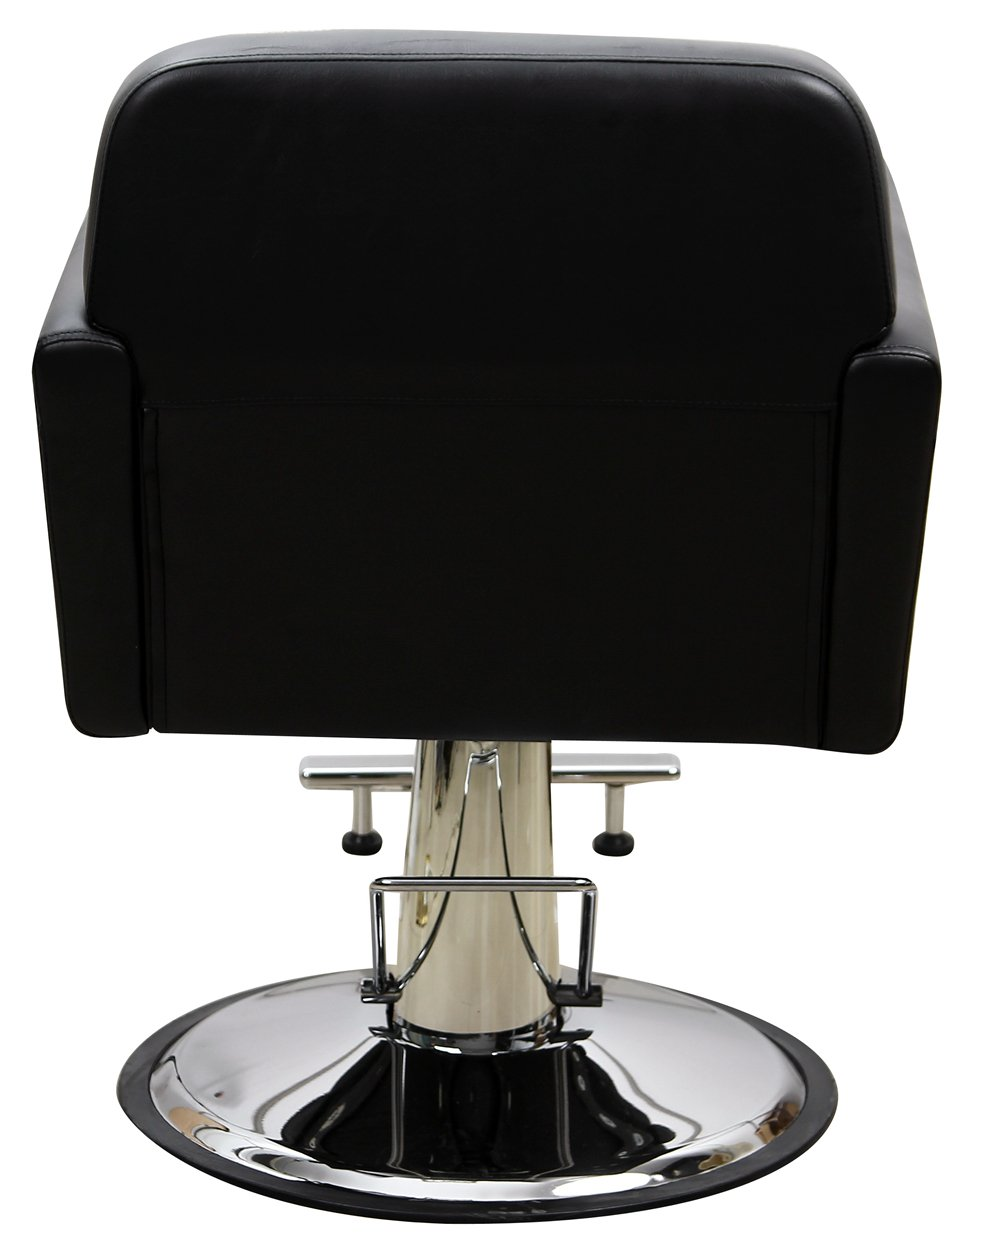 ShengYu Hydraulic Barber Chair Styling Salon Work Station Chair by Shengyu (Image #5)